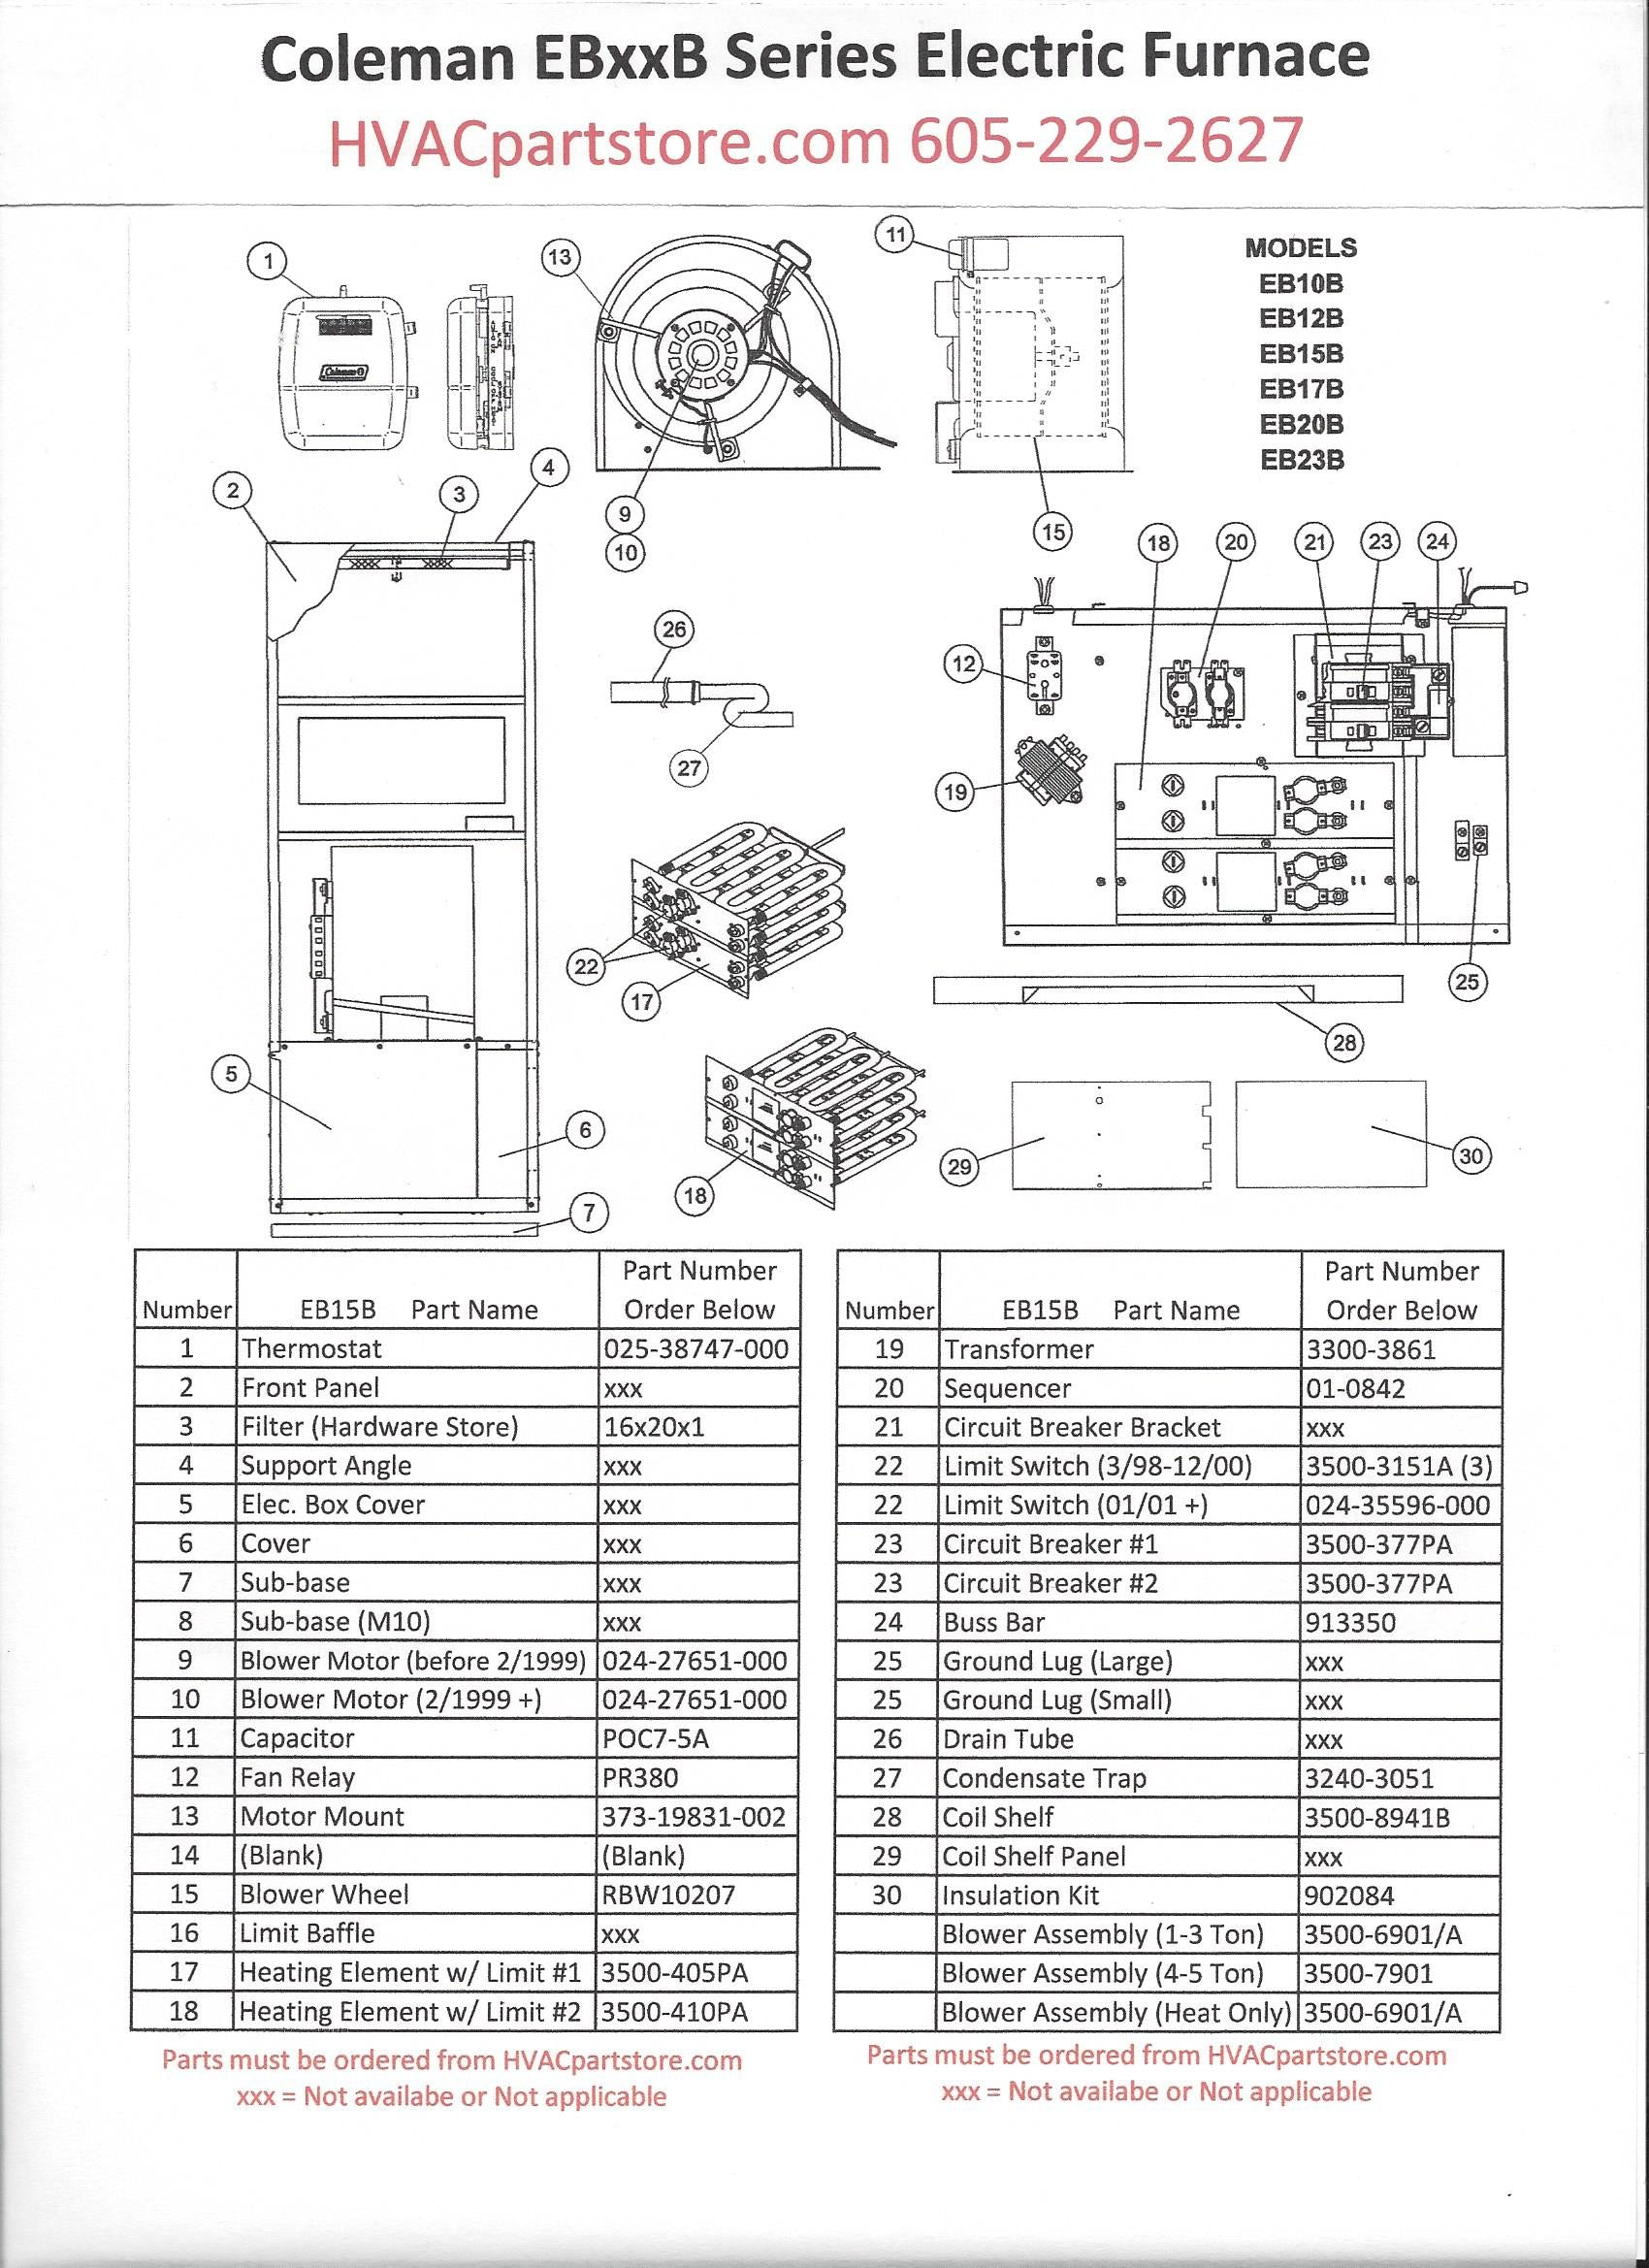 [ZHKZ_3066]  A65542 Coleman Furnace Circuit Board Wiring Diagram | Wiring Resources | Dgaa077bdta Evcon Wiring Diagram |  | Wiring Resources